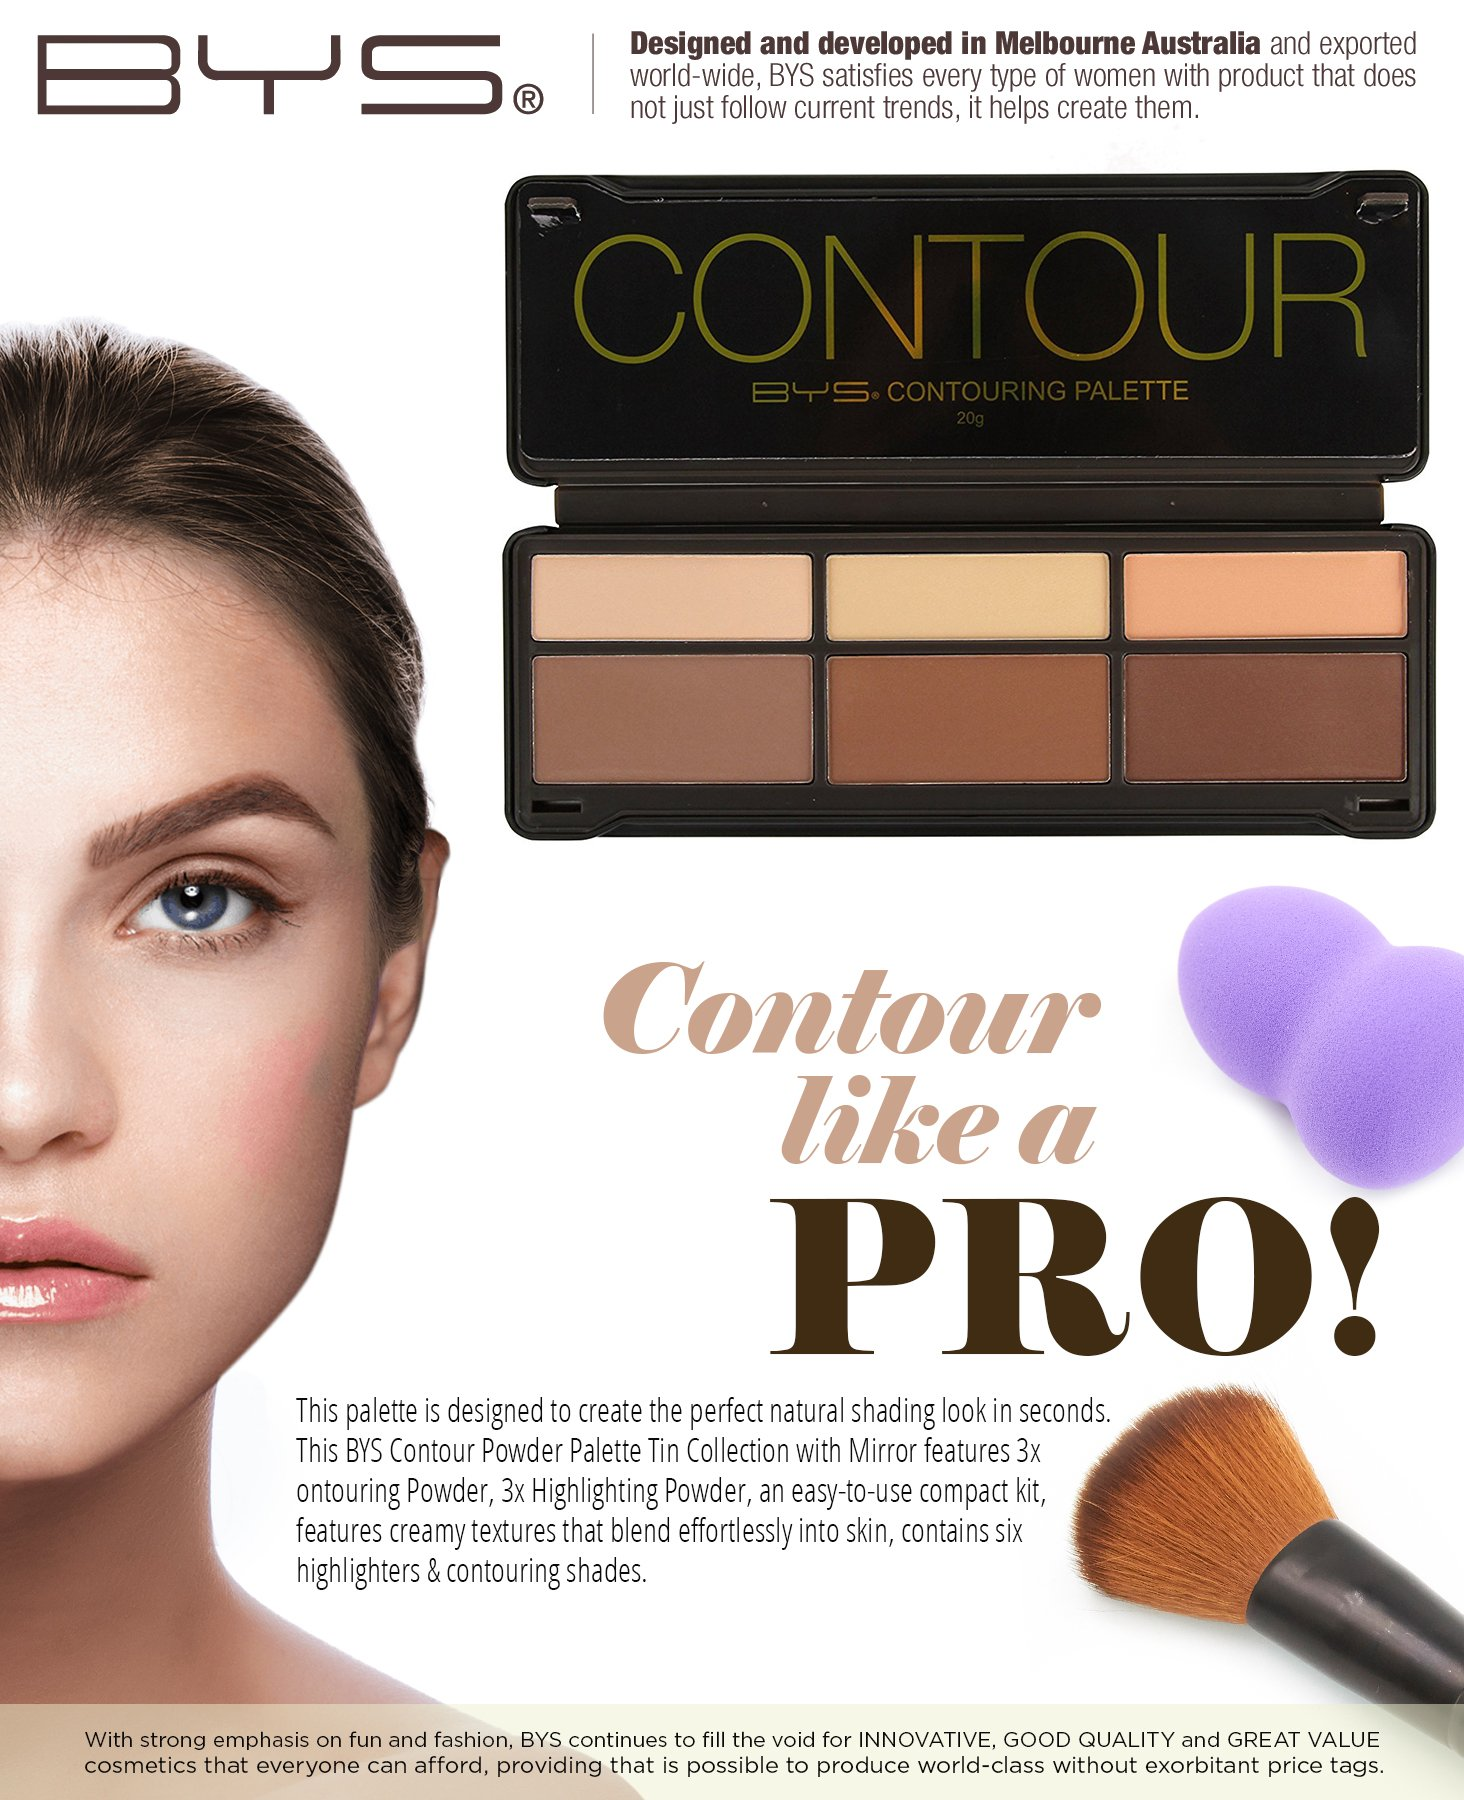 BYS Contour Palette (3x Contouring Powder, 3x Highlighting Powder) by BYS (Image #2)